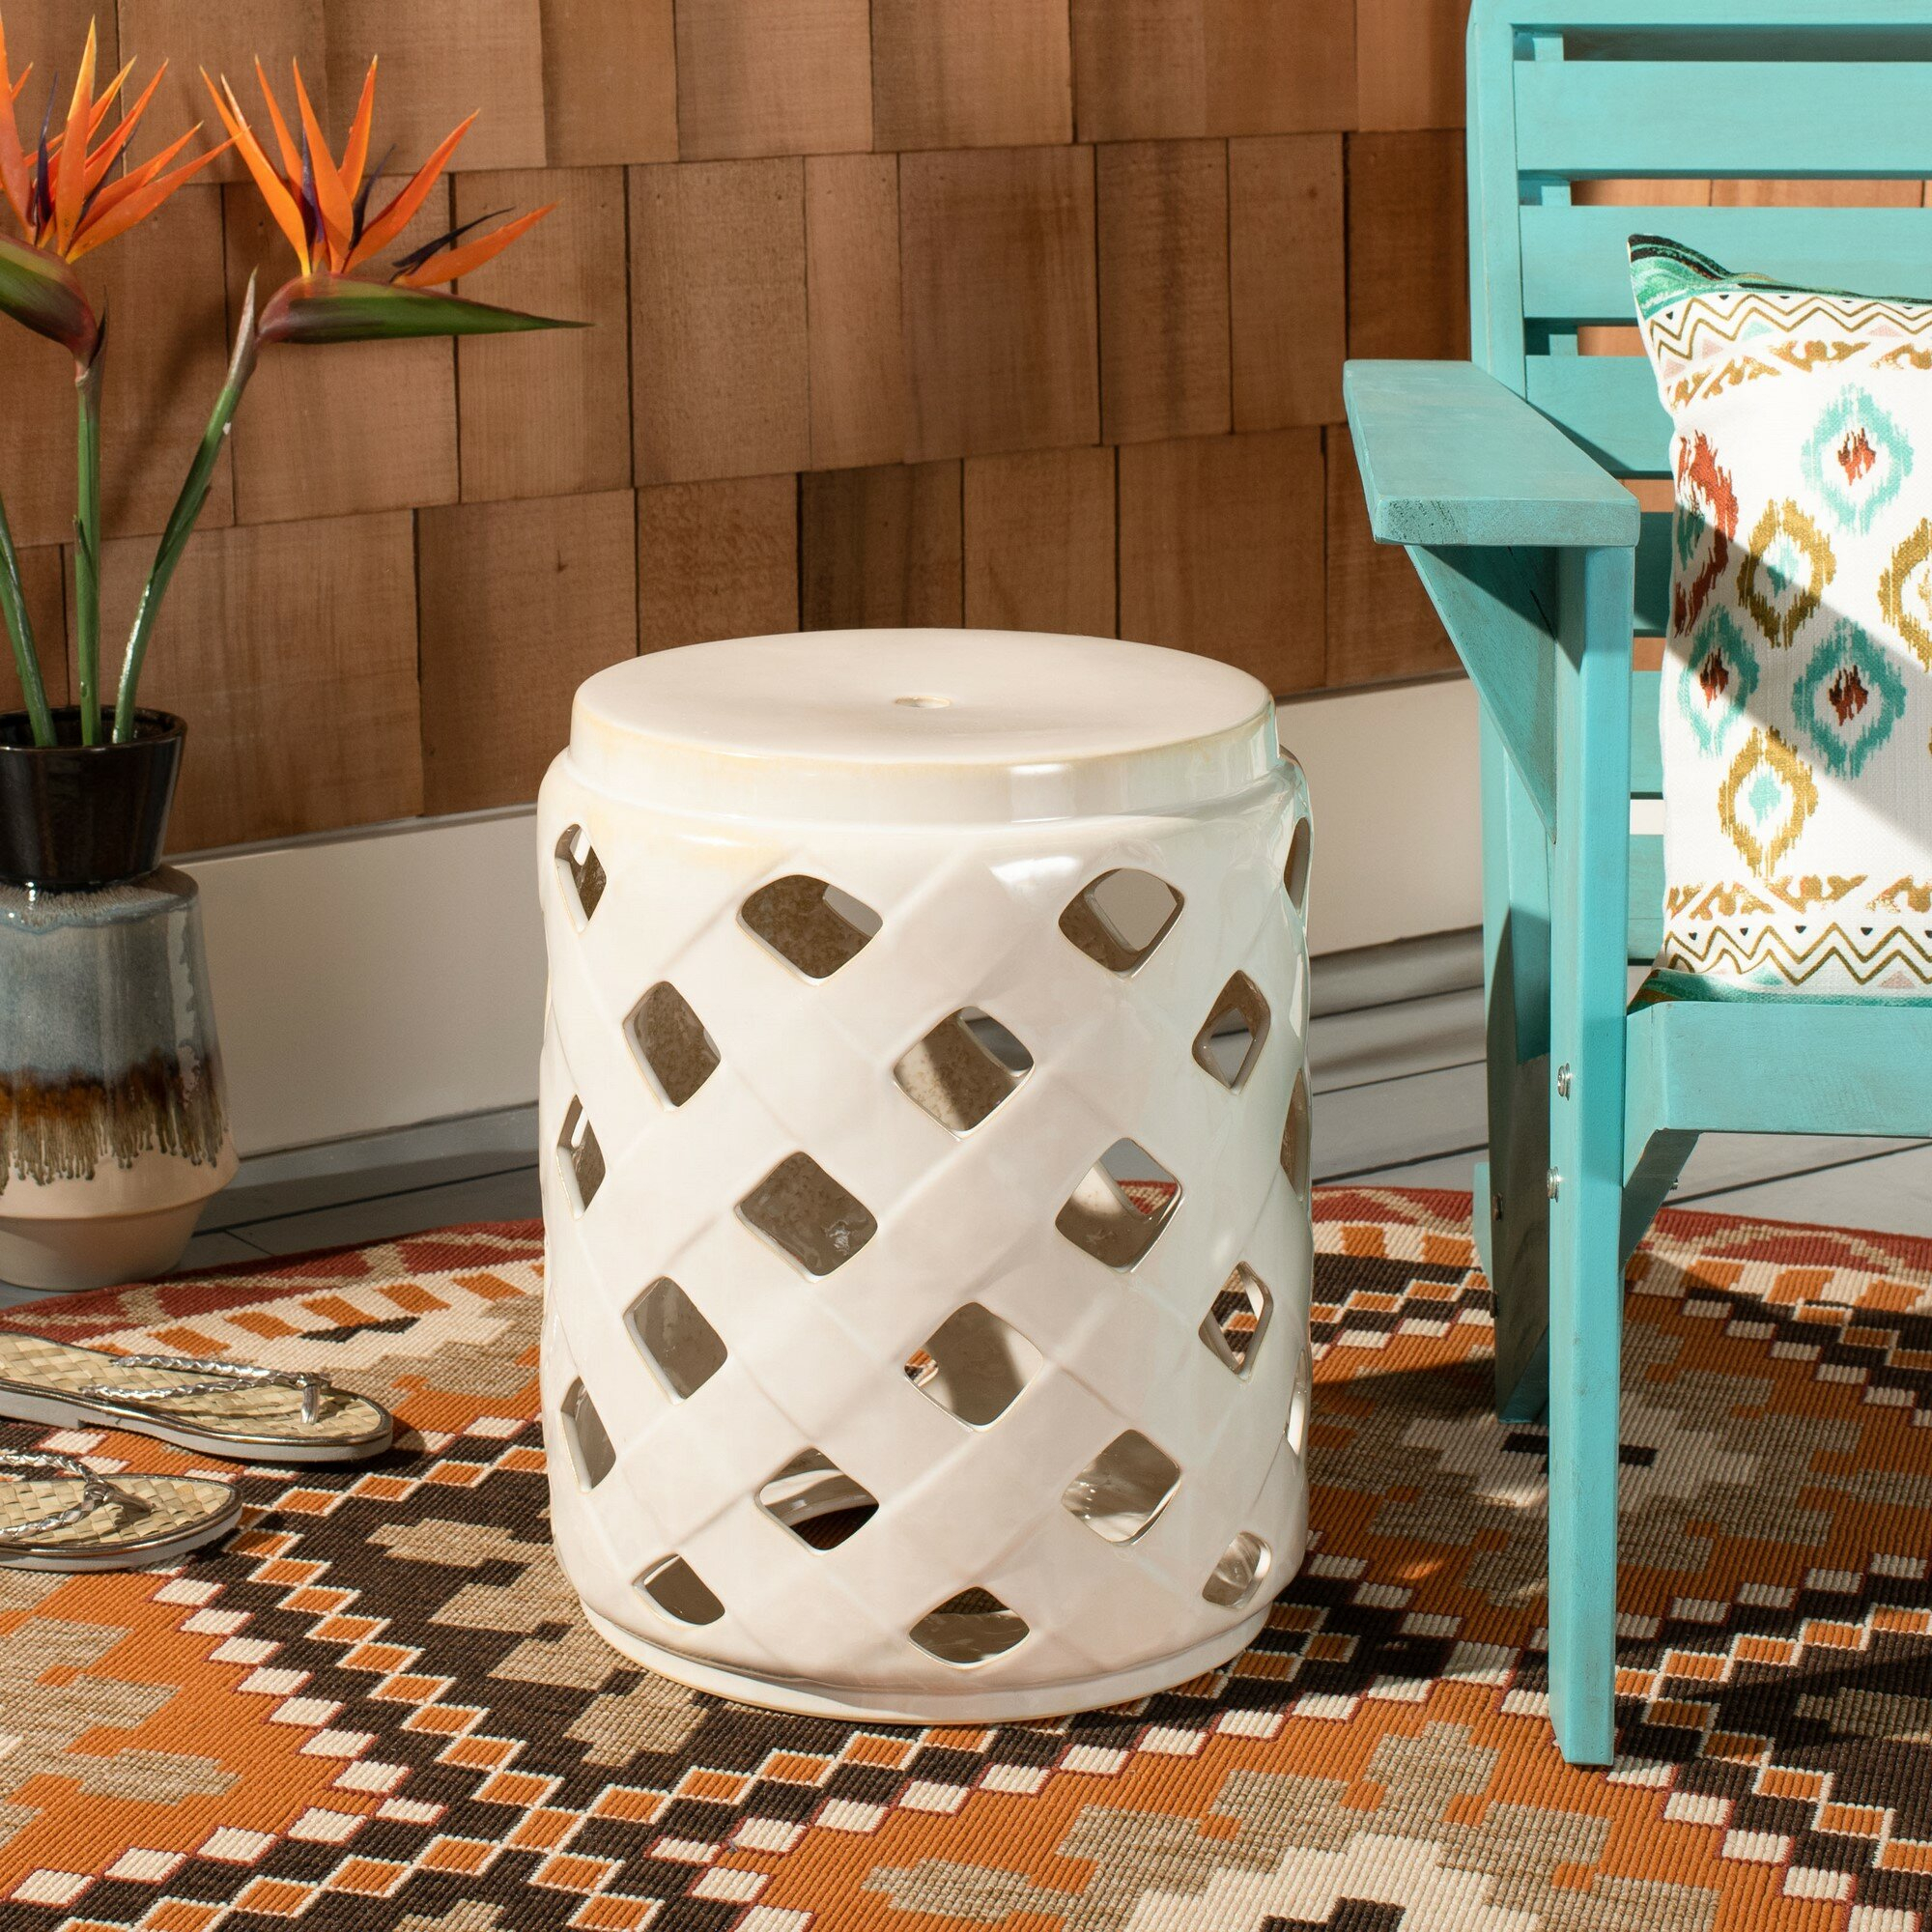 Caron Ceramic Garden Stool Pertaining To Harwich Ceramic Garden Stools (View 13 of 25)